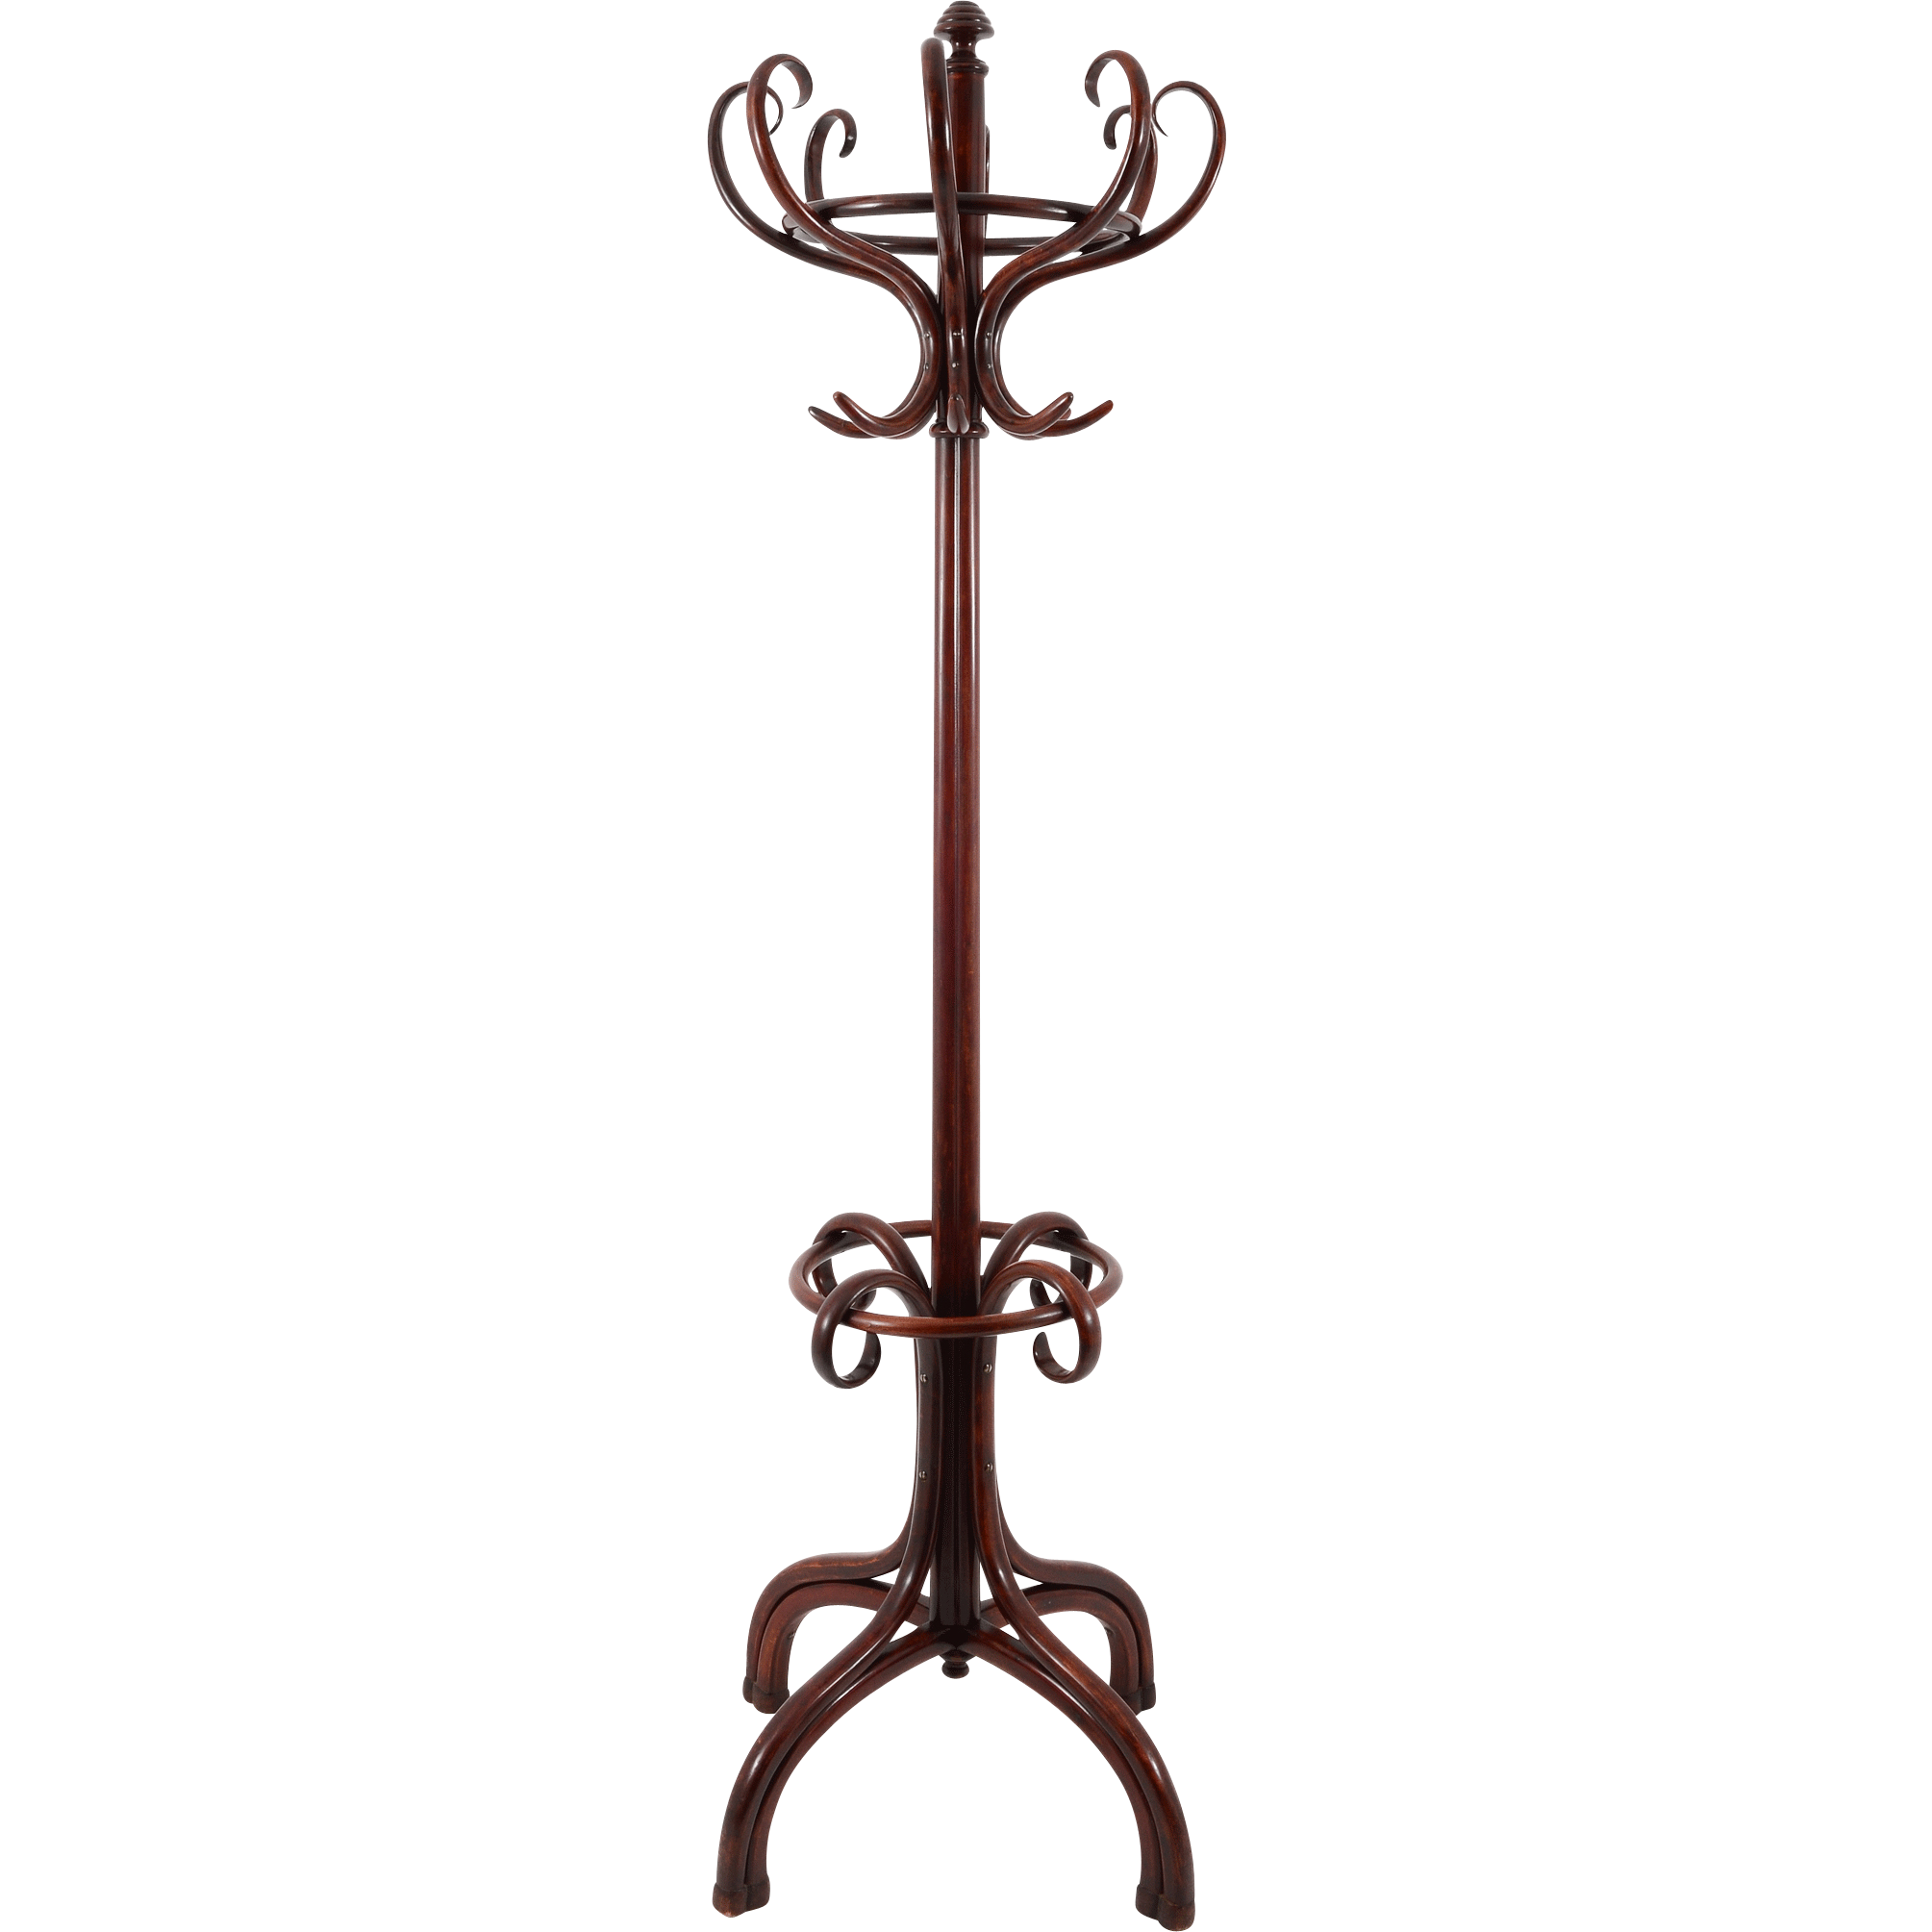 American Mahogany Coat Rack and Umbrella Stand